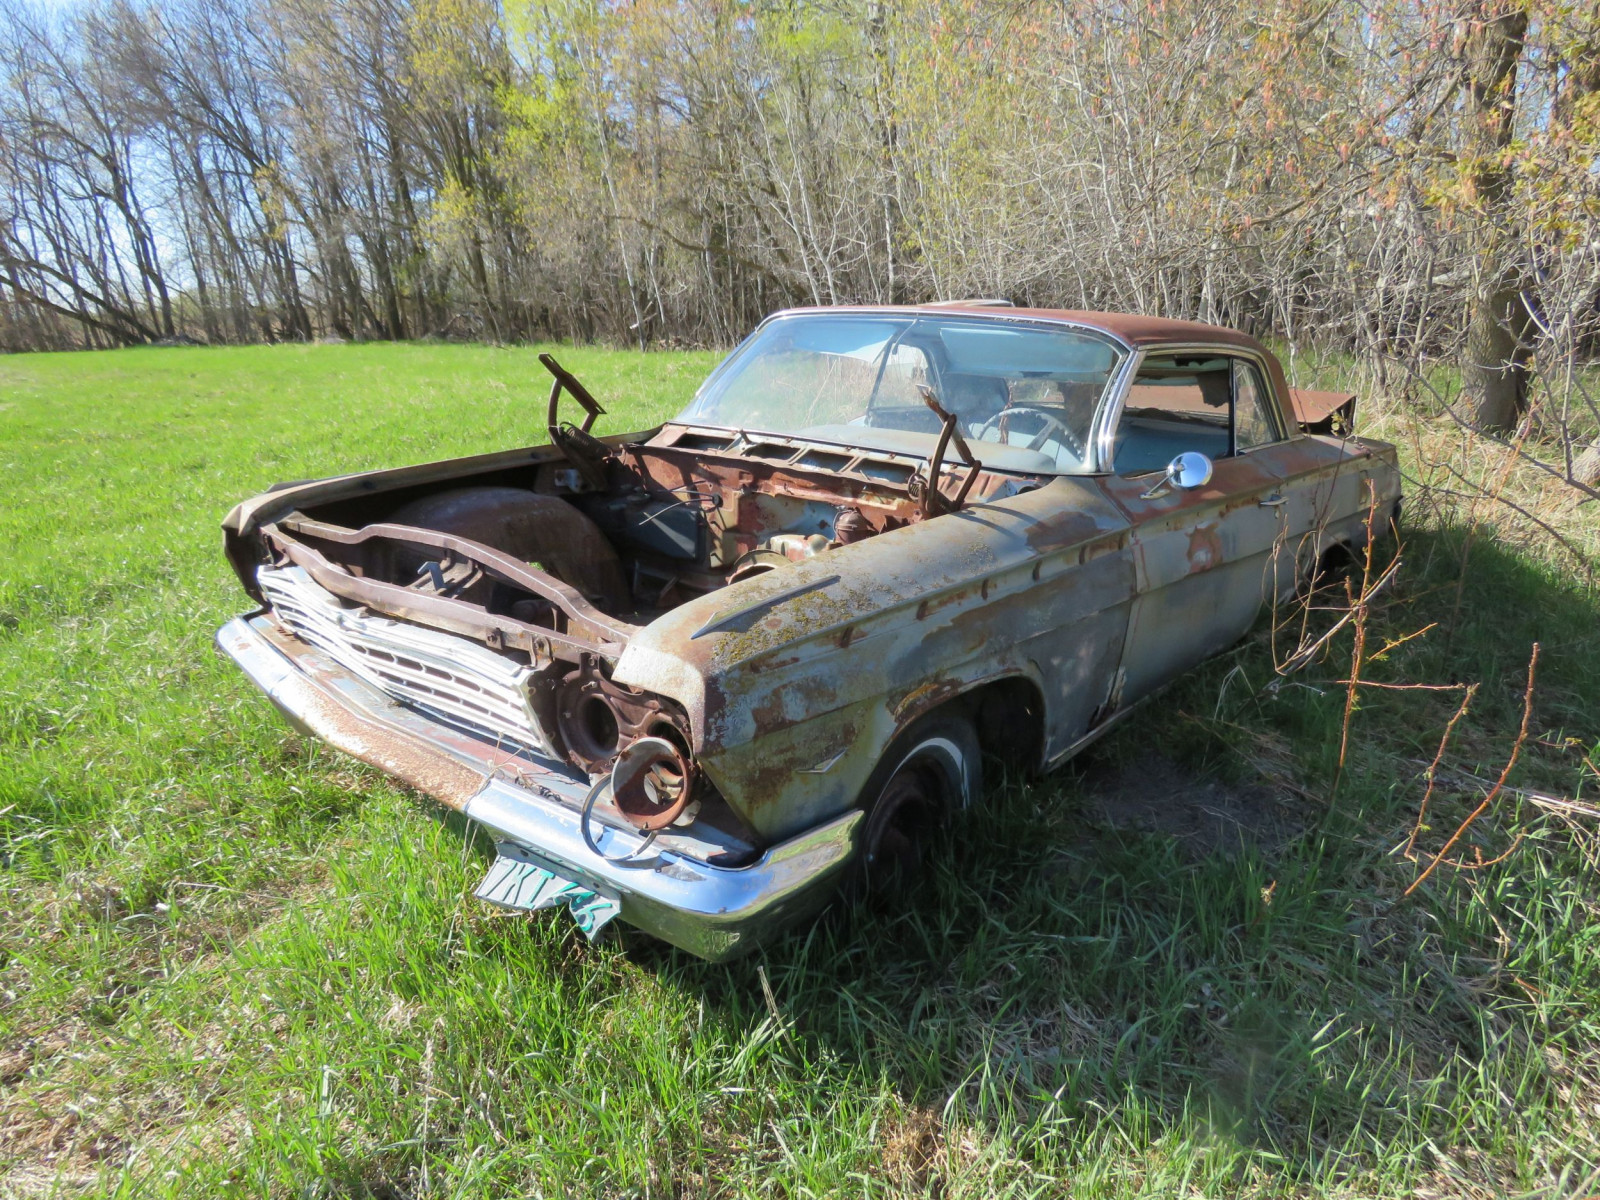 1962 Chevrolet 2dr HT rough Shell only - Image 1